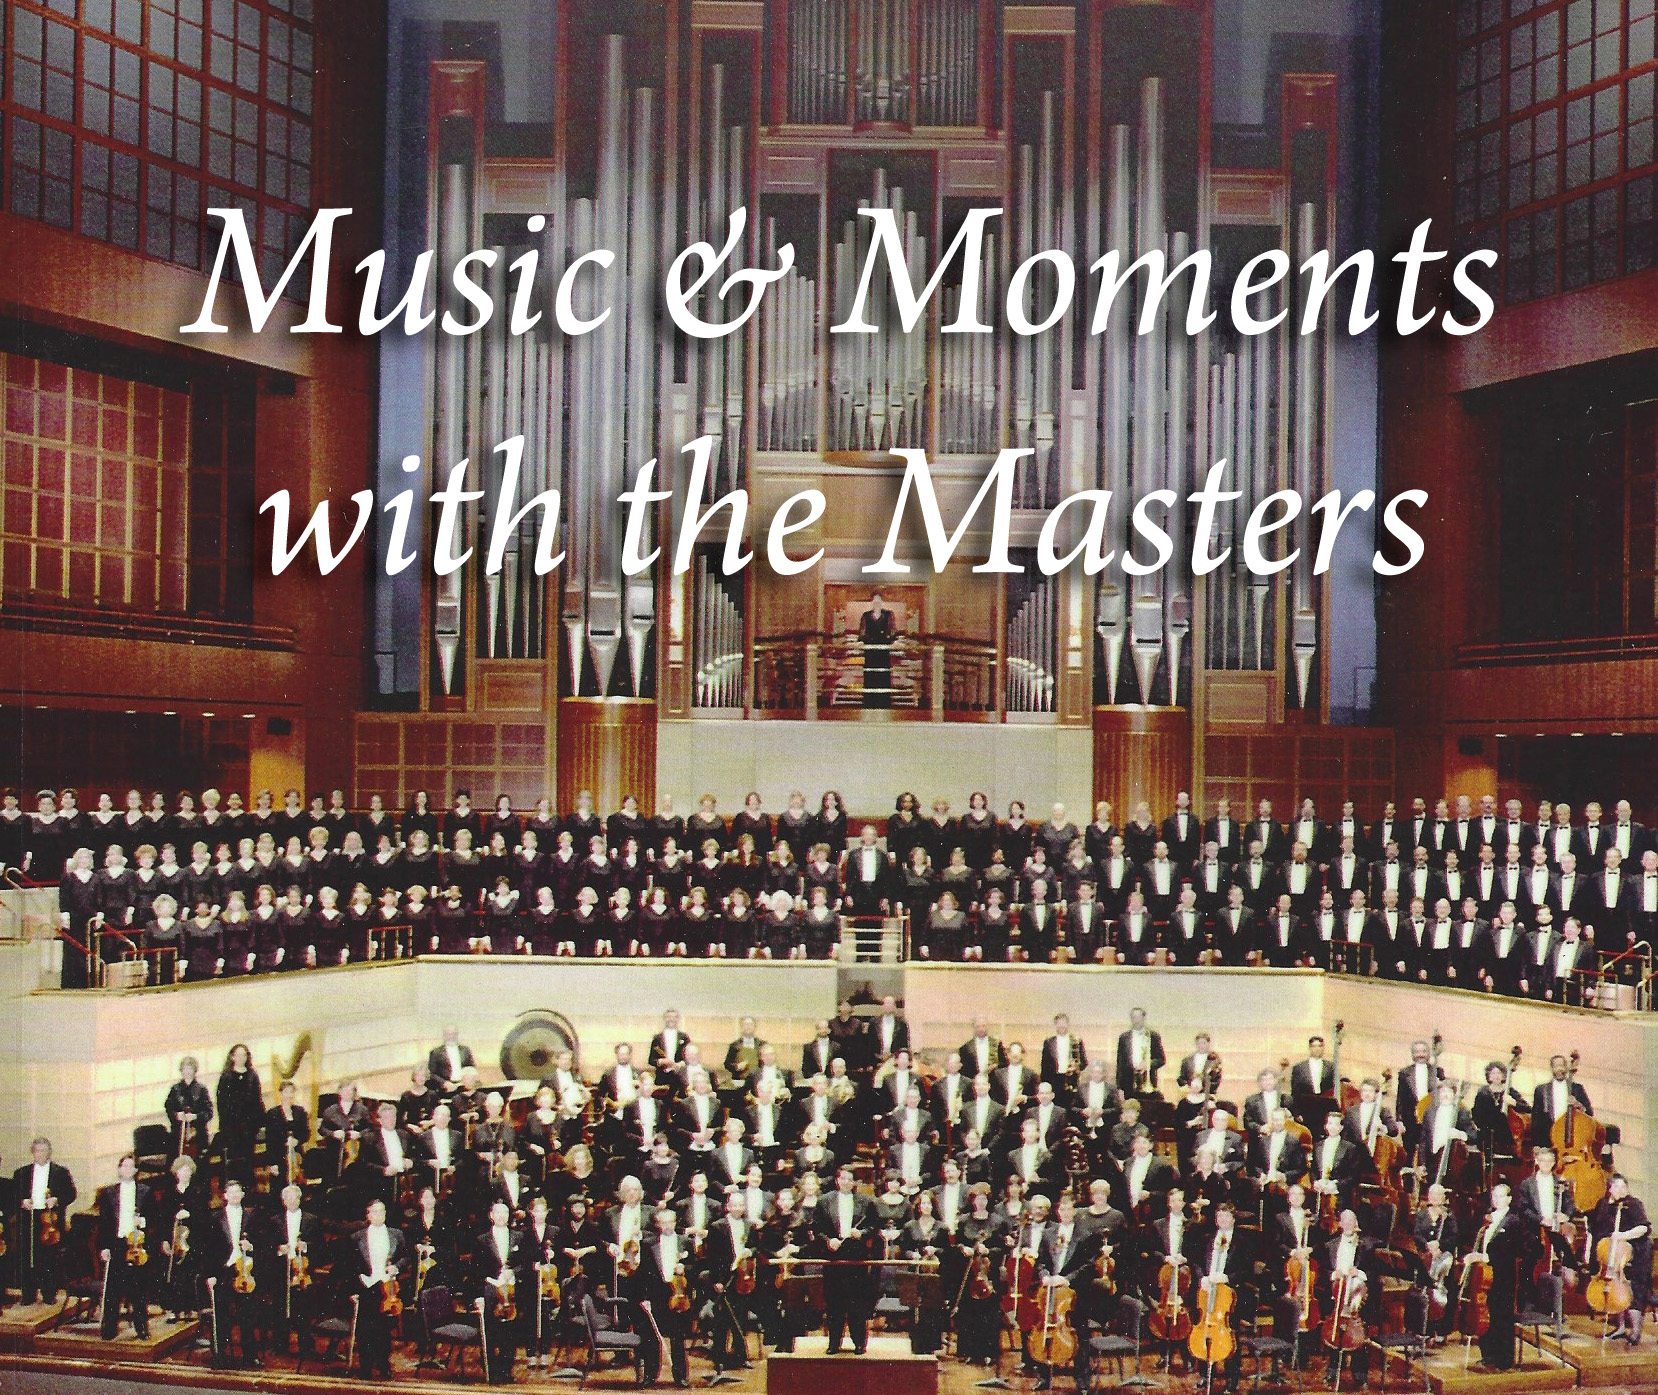 Music & Moments with the Masters